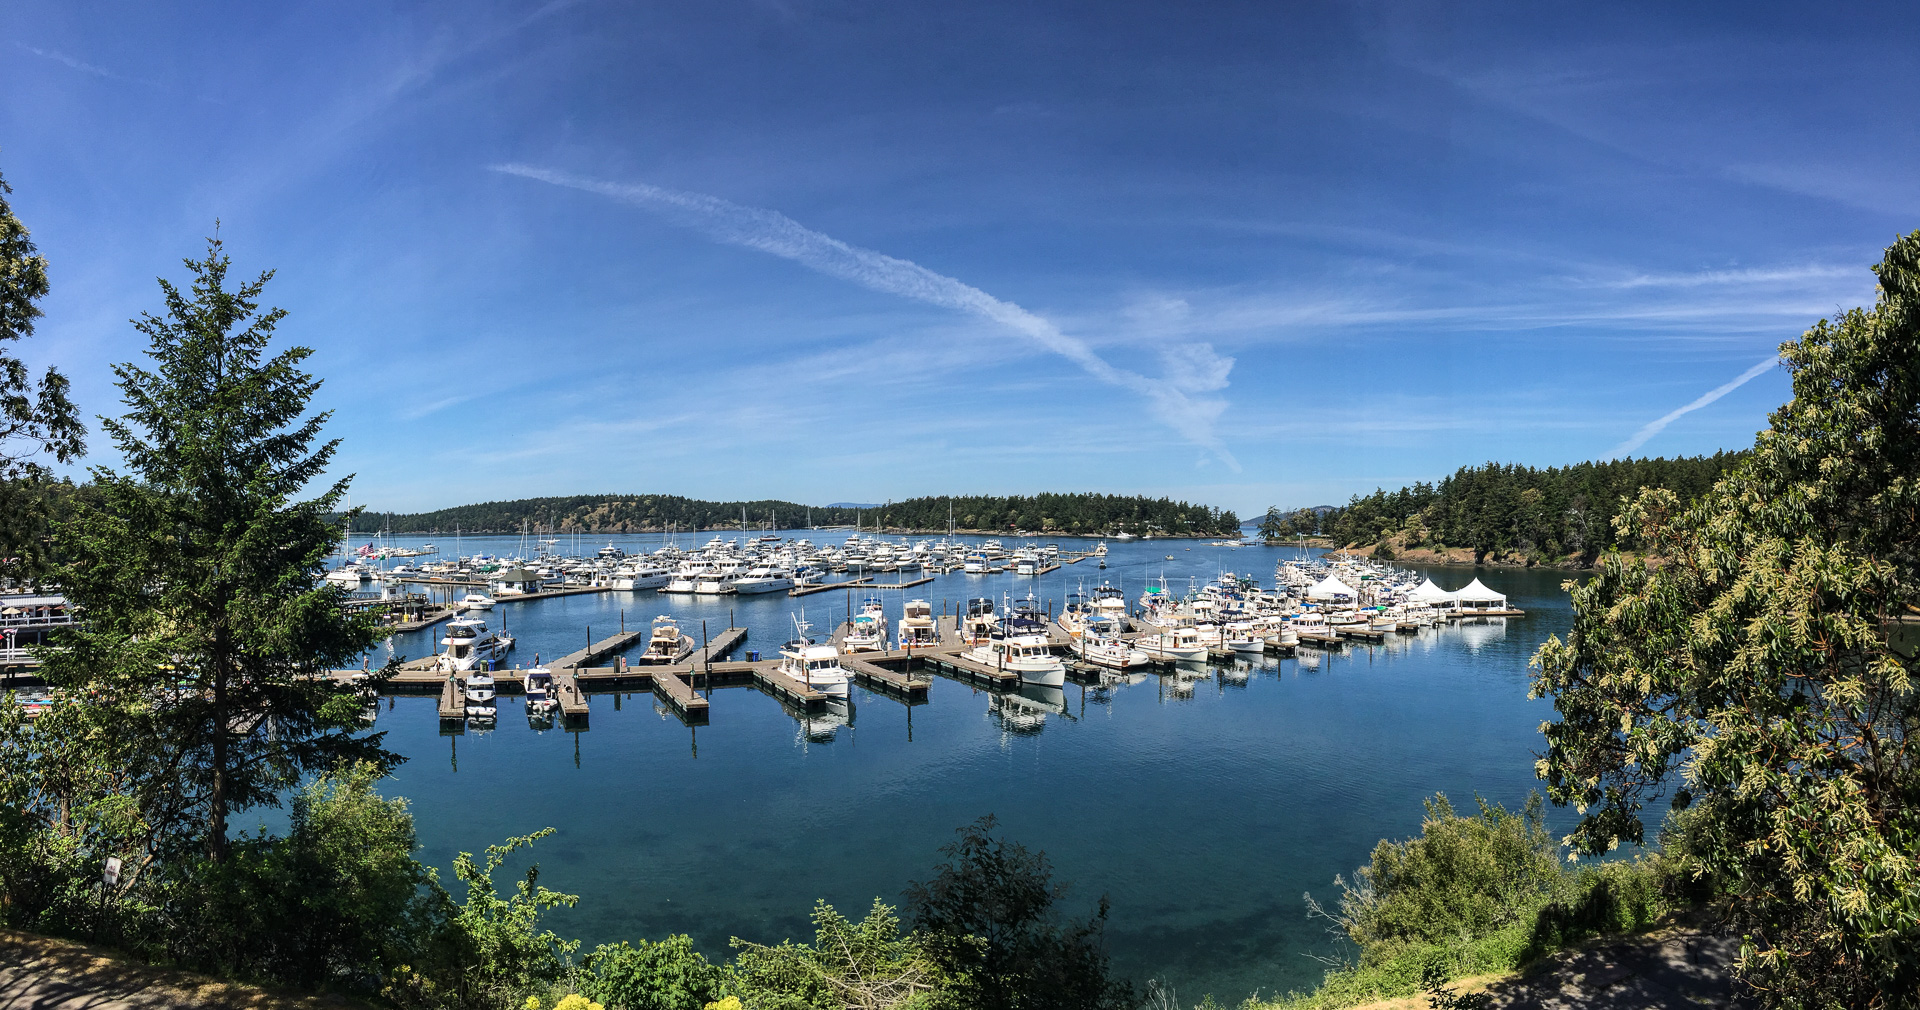 And here is the view of Roche Harbor from the steps of the church. You'll  note it's another fantastic day. Let's hope this weather holds 'til we get  back to ...